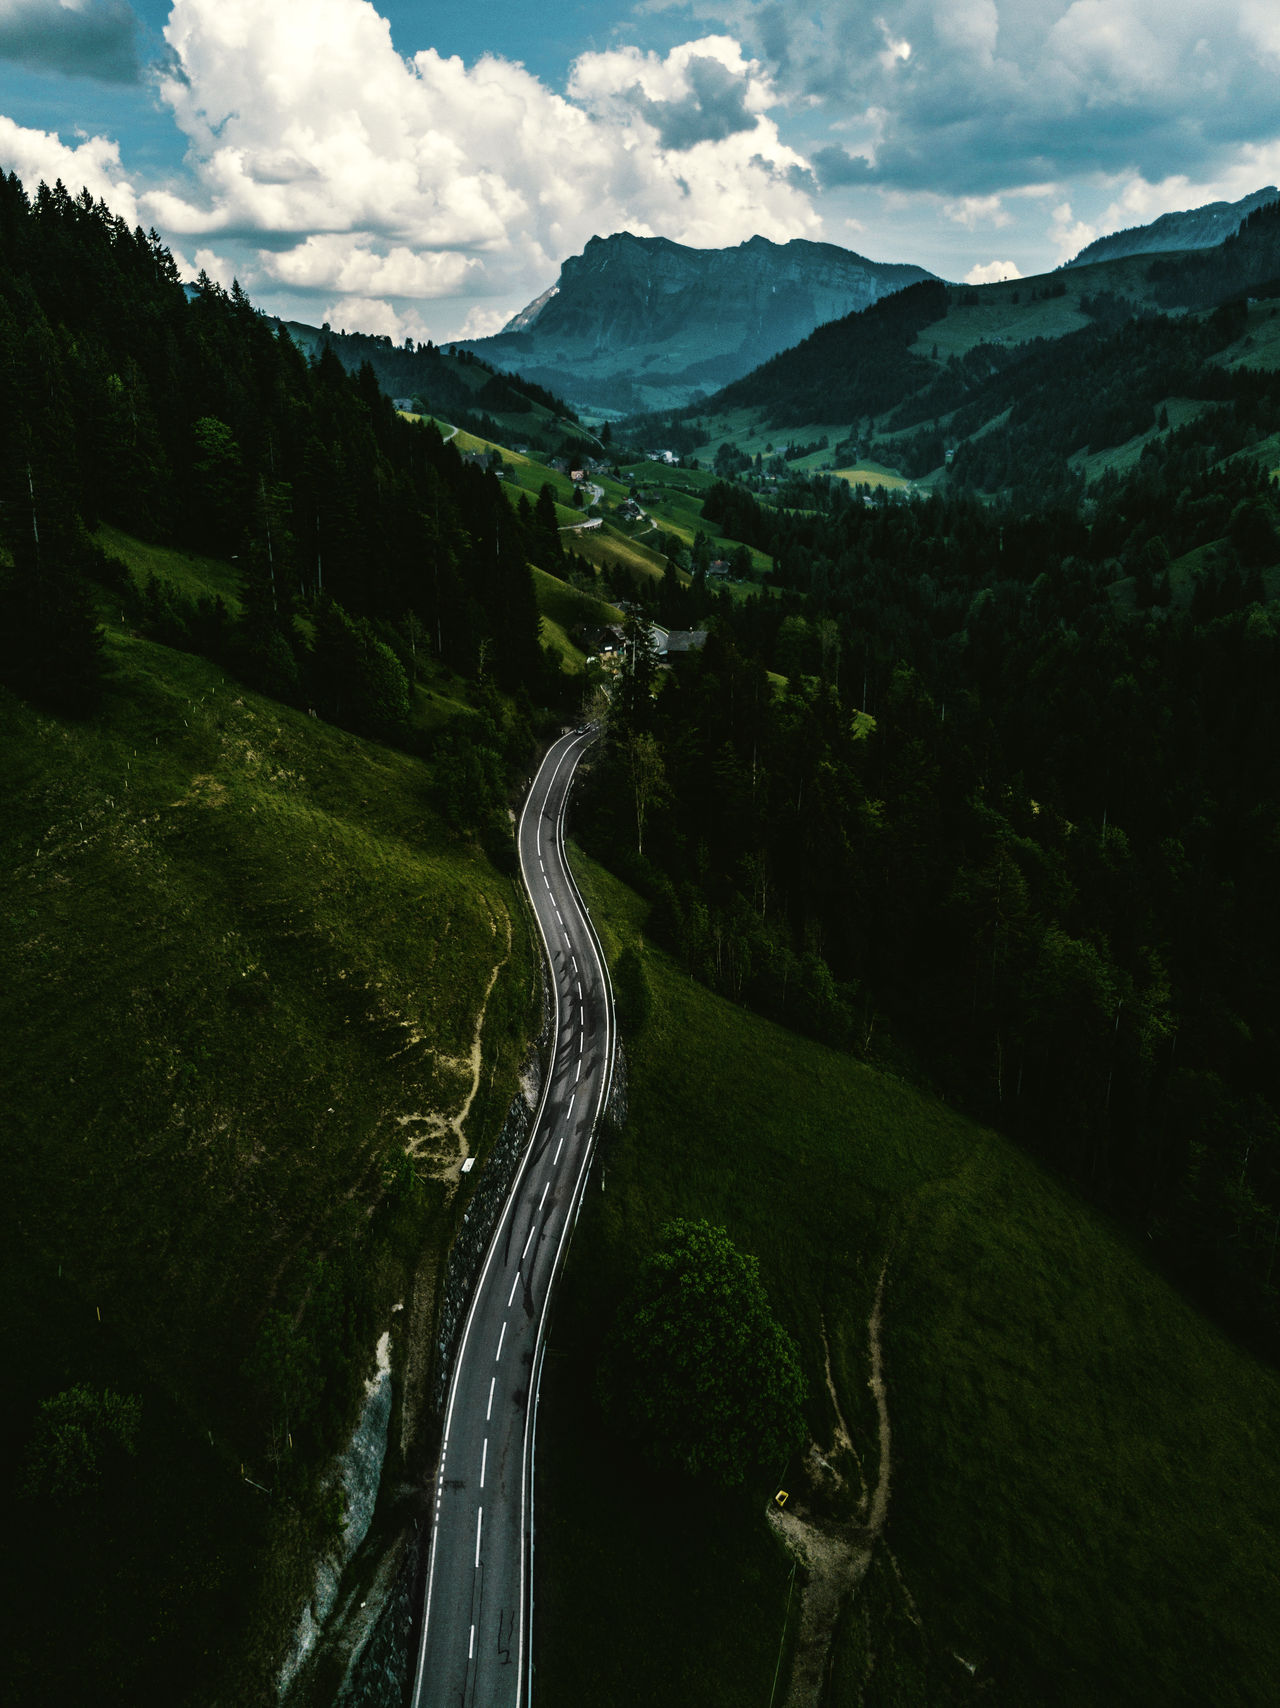 Landscape Mountain Mountain Road Nature Outdoors Road Scenics Tranquil Scene Winding Road